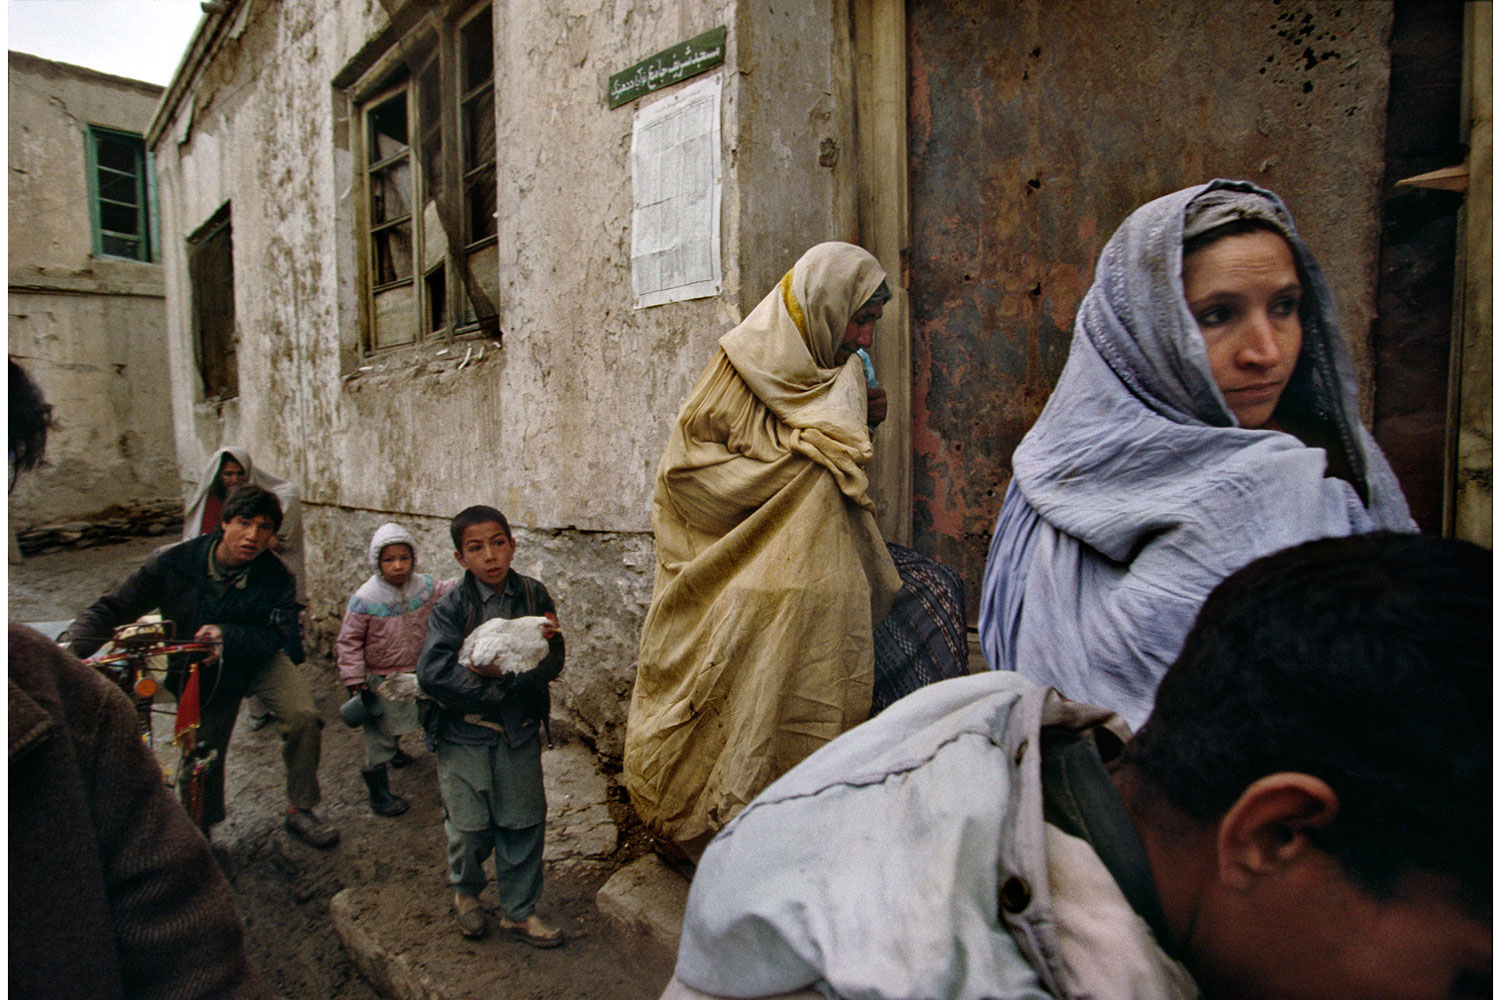 Book. Afghanistan - A Distant War, by Robert Nickelsberg. Prestel. Fall 2013. Pictured: A Kabul family flees its home during factional fighting between President Rabbani's government forces and opposition Hezb-i-Wahdat fighters in western Kabul. March, 1993.